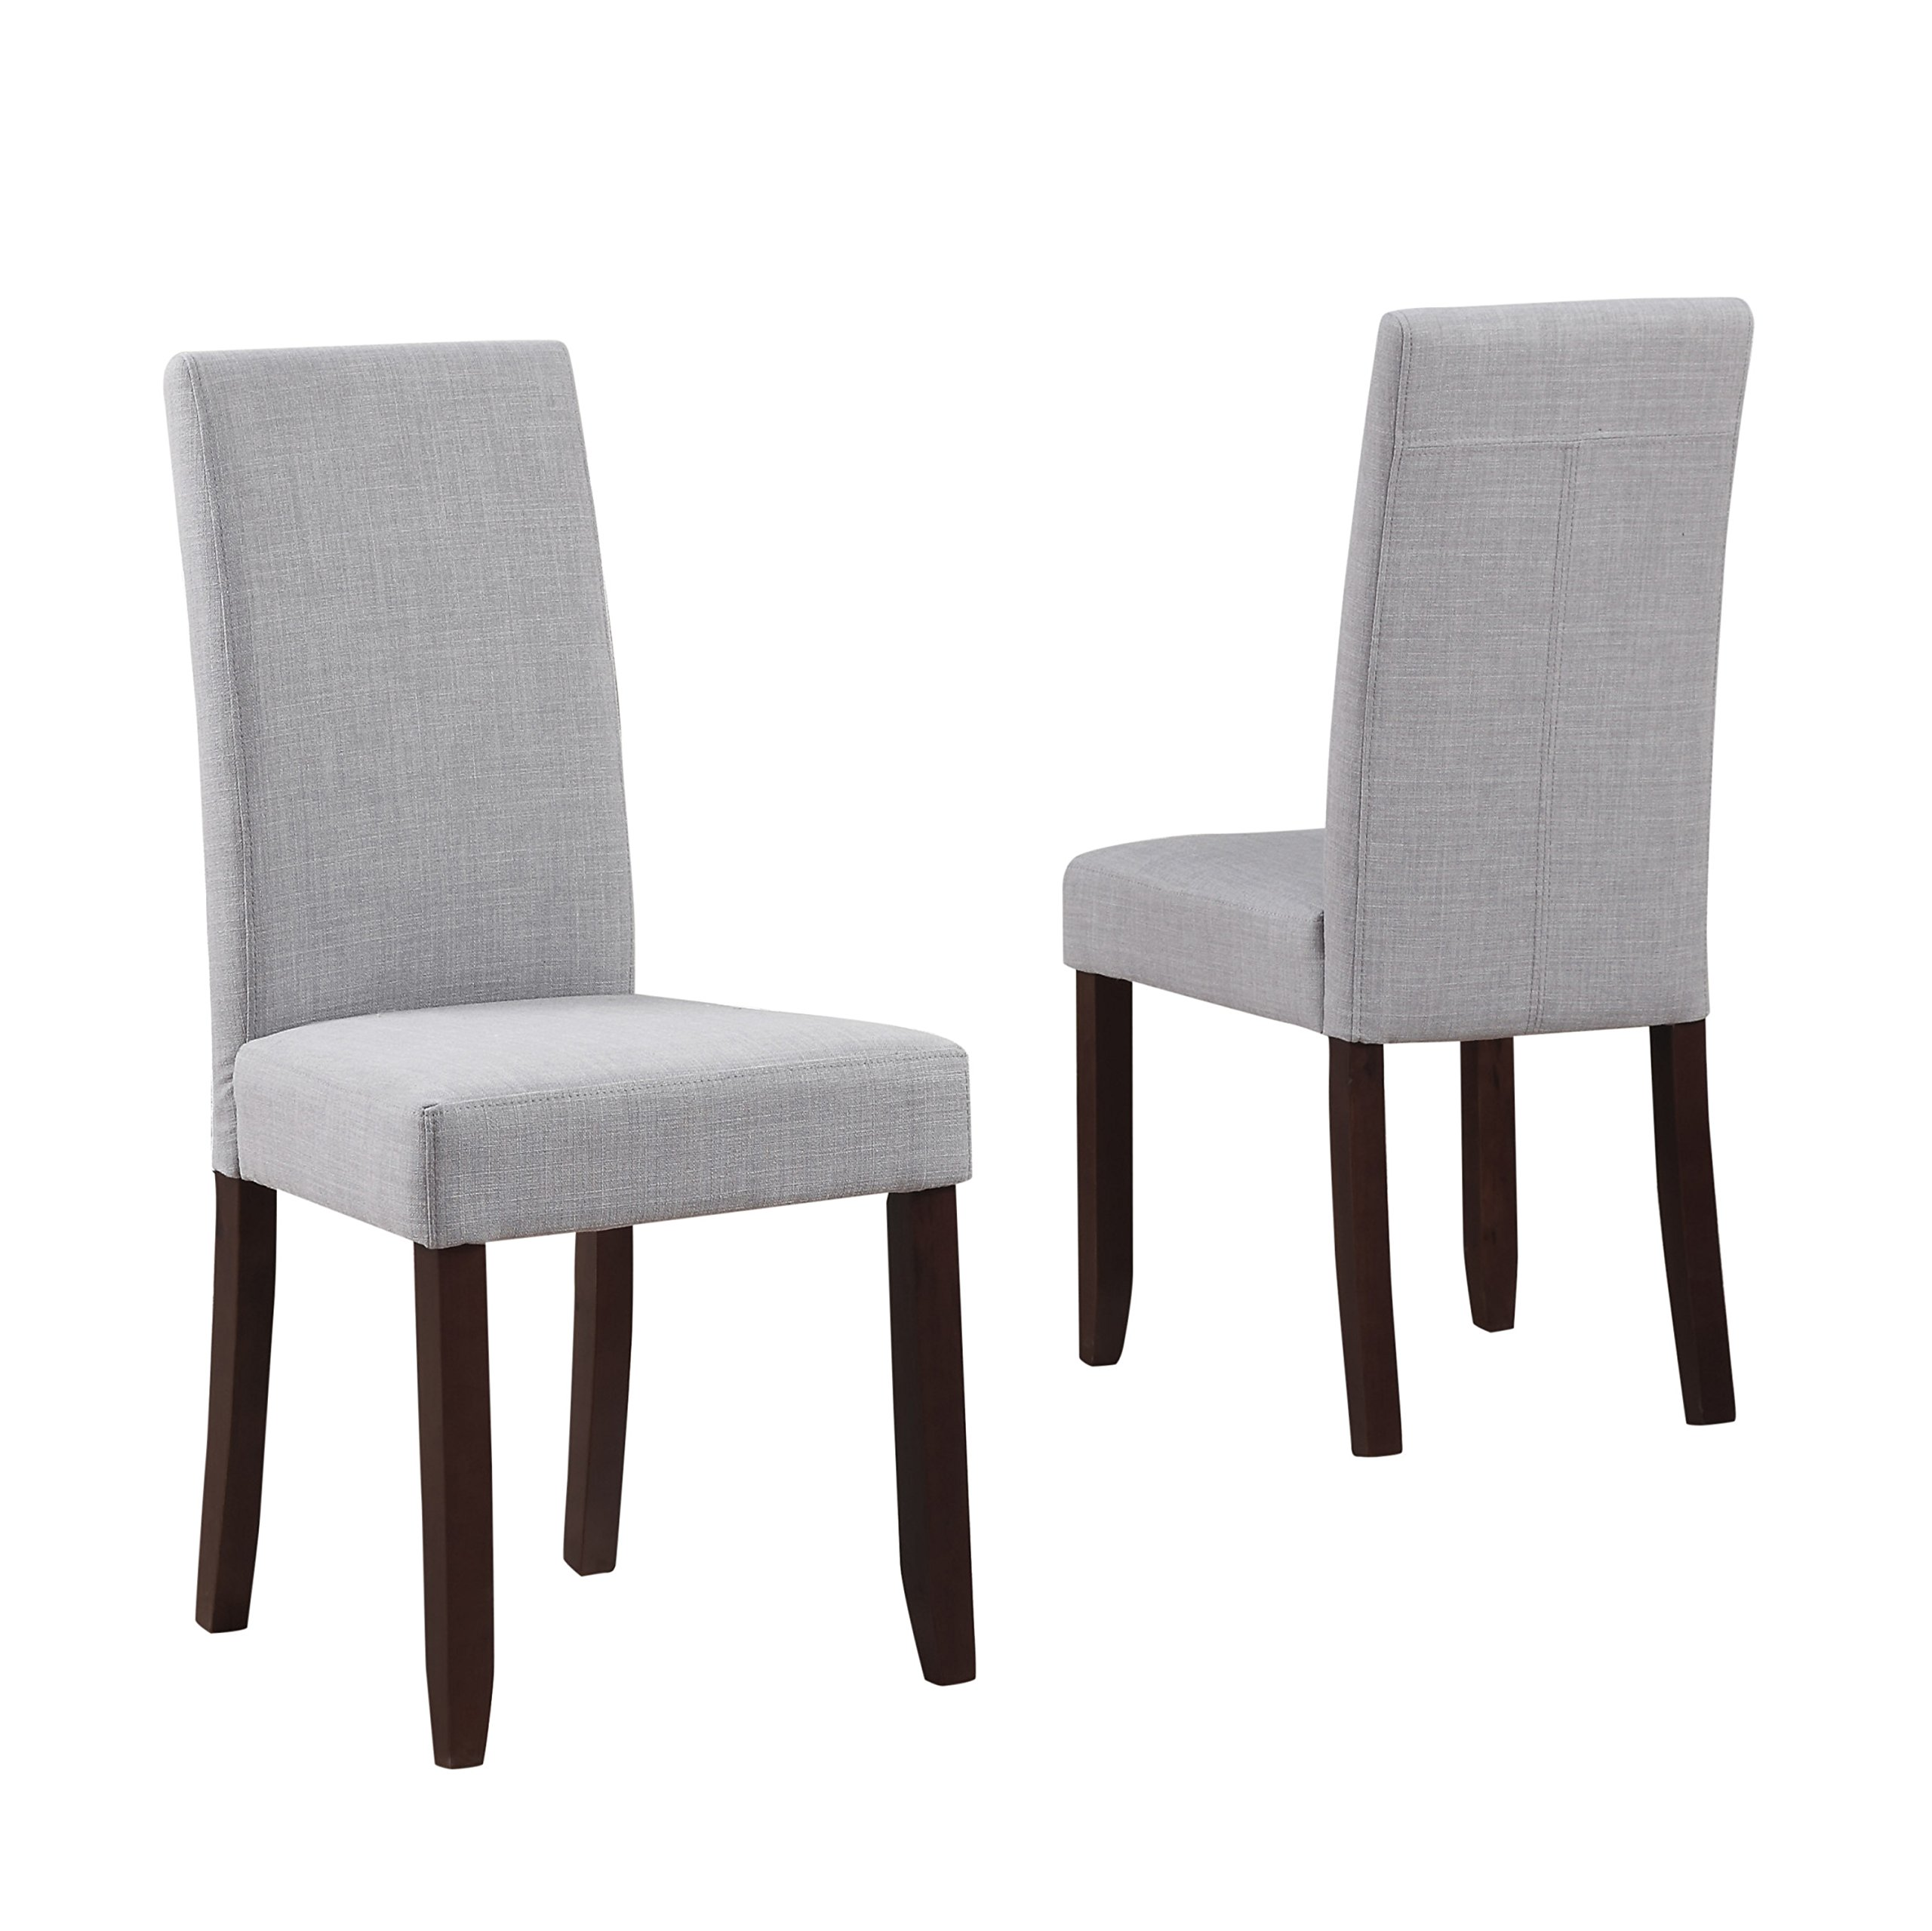 Simpli Home Acadian Parson Dining Chair, Dove Grey (Set of 2)